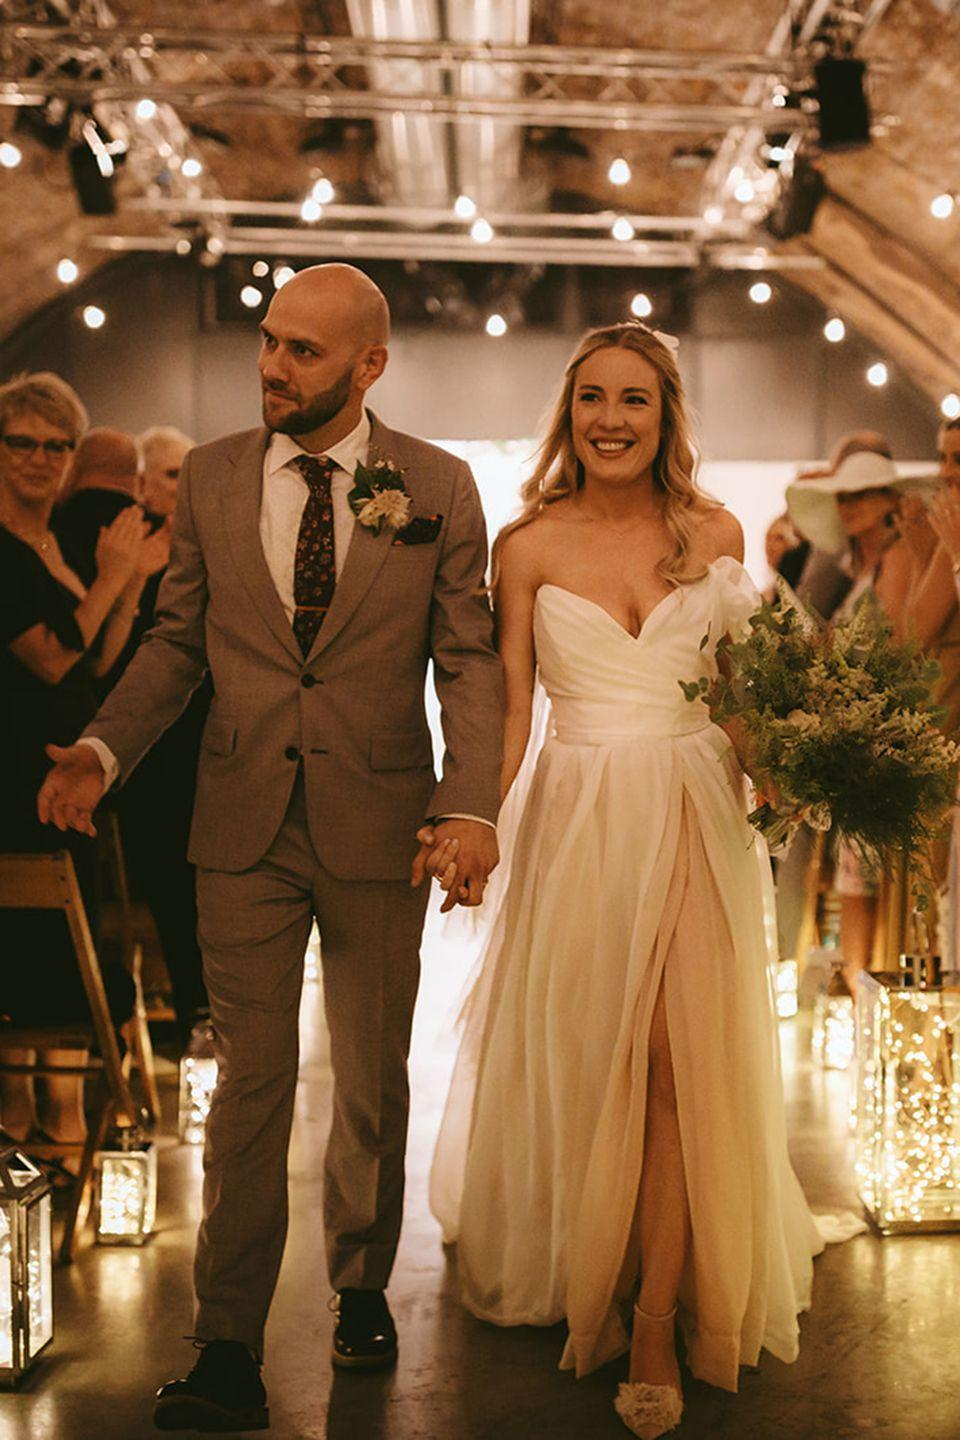 <p><strong>Dress</strong>: Custom-made by the mother of the bride, Averil Leimon</p><p><strong>Shoes</strong>: Topshop<br></p><p><strong>Jewellery</strong>: Astrid + Miyu</p>